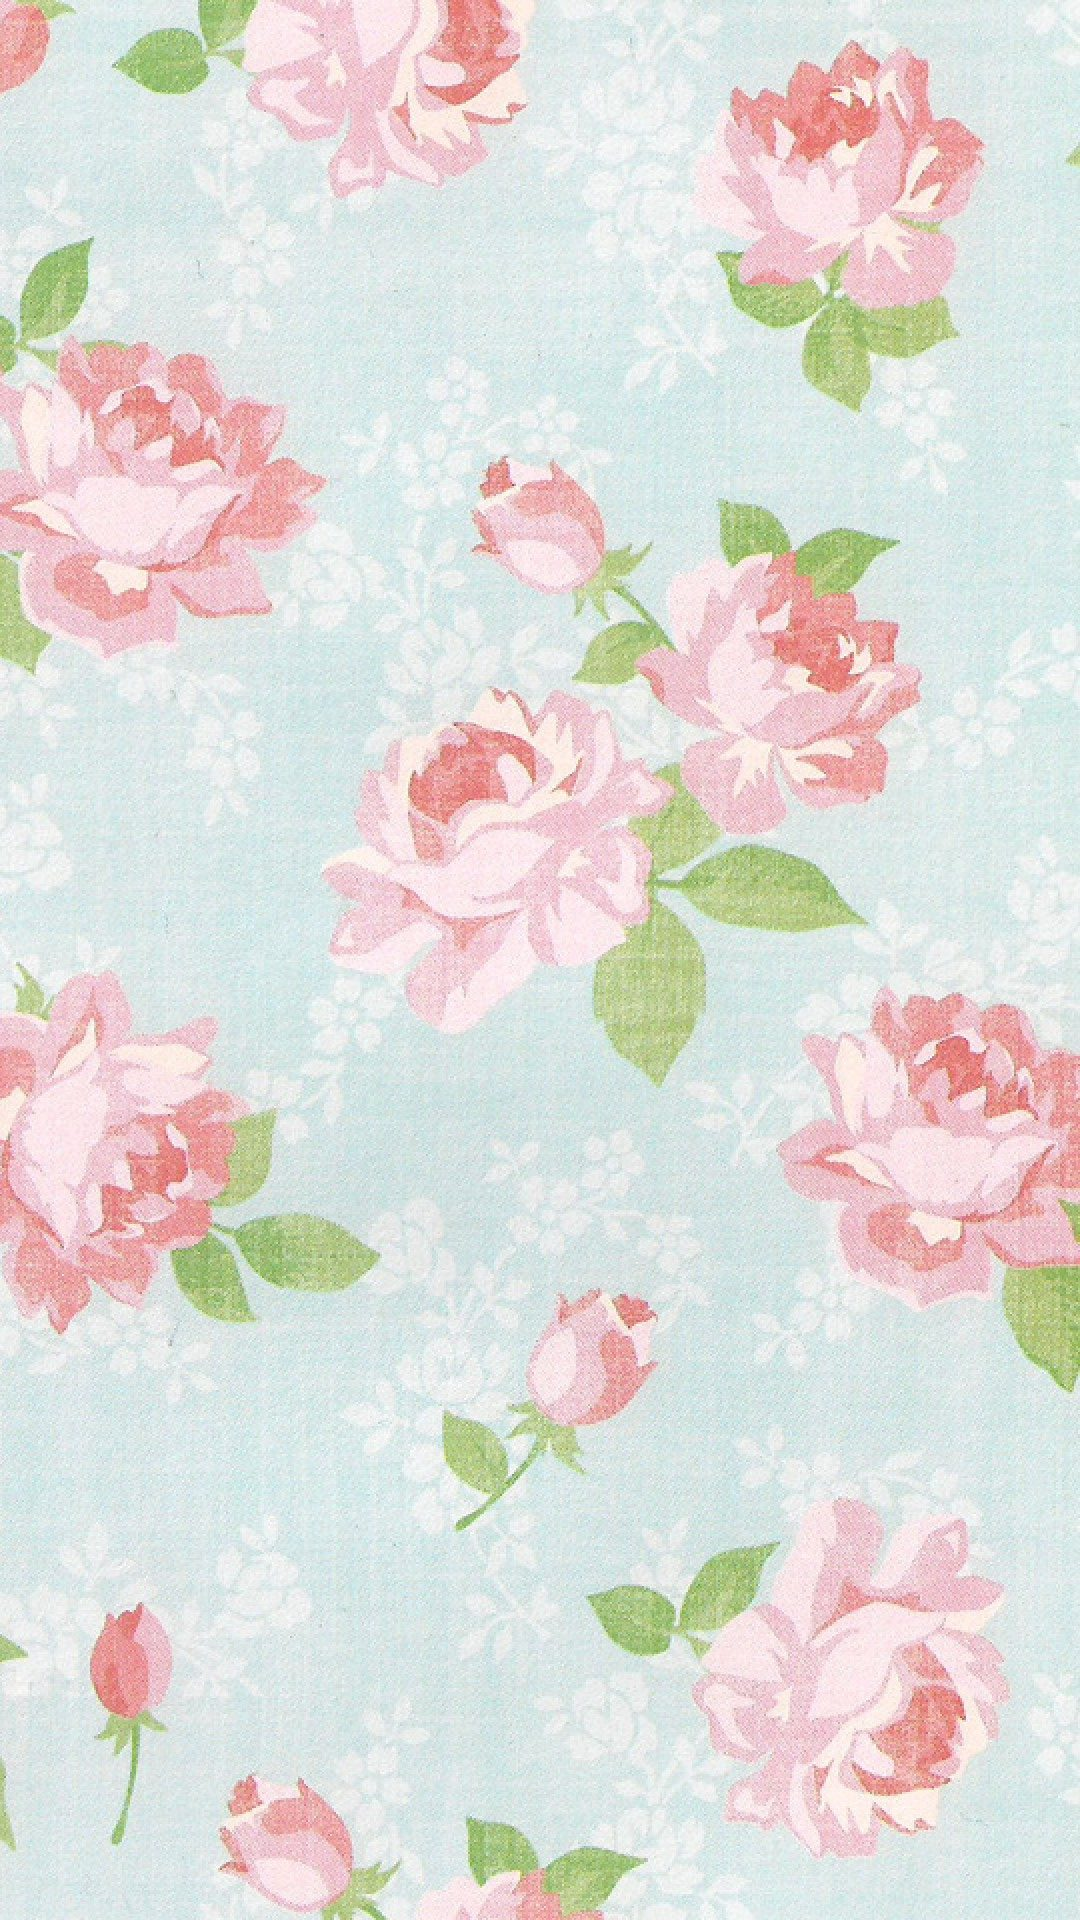 824987536 Floral Background Tumblr Wallpaper Desktop Bethany And